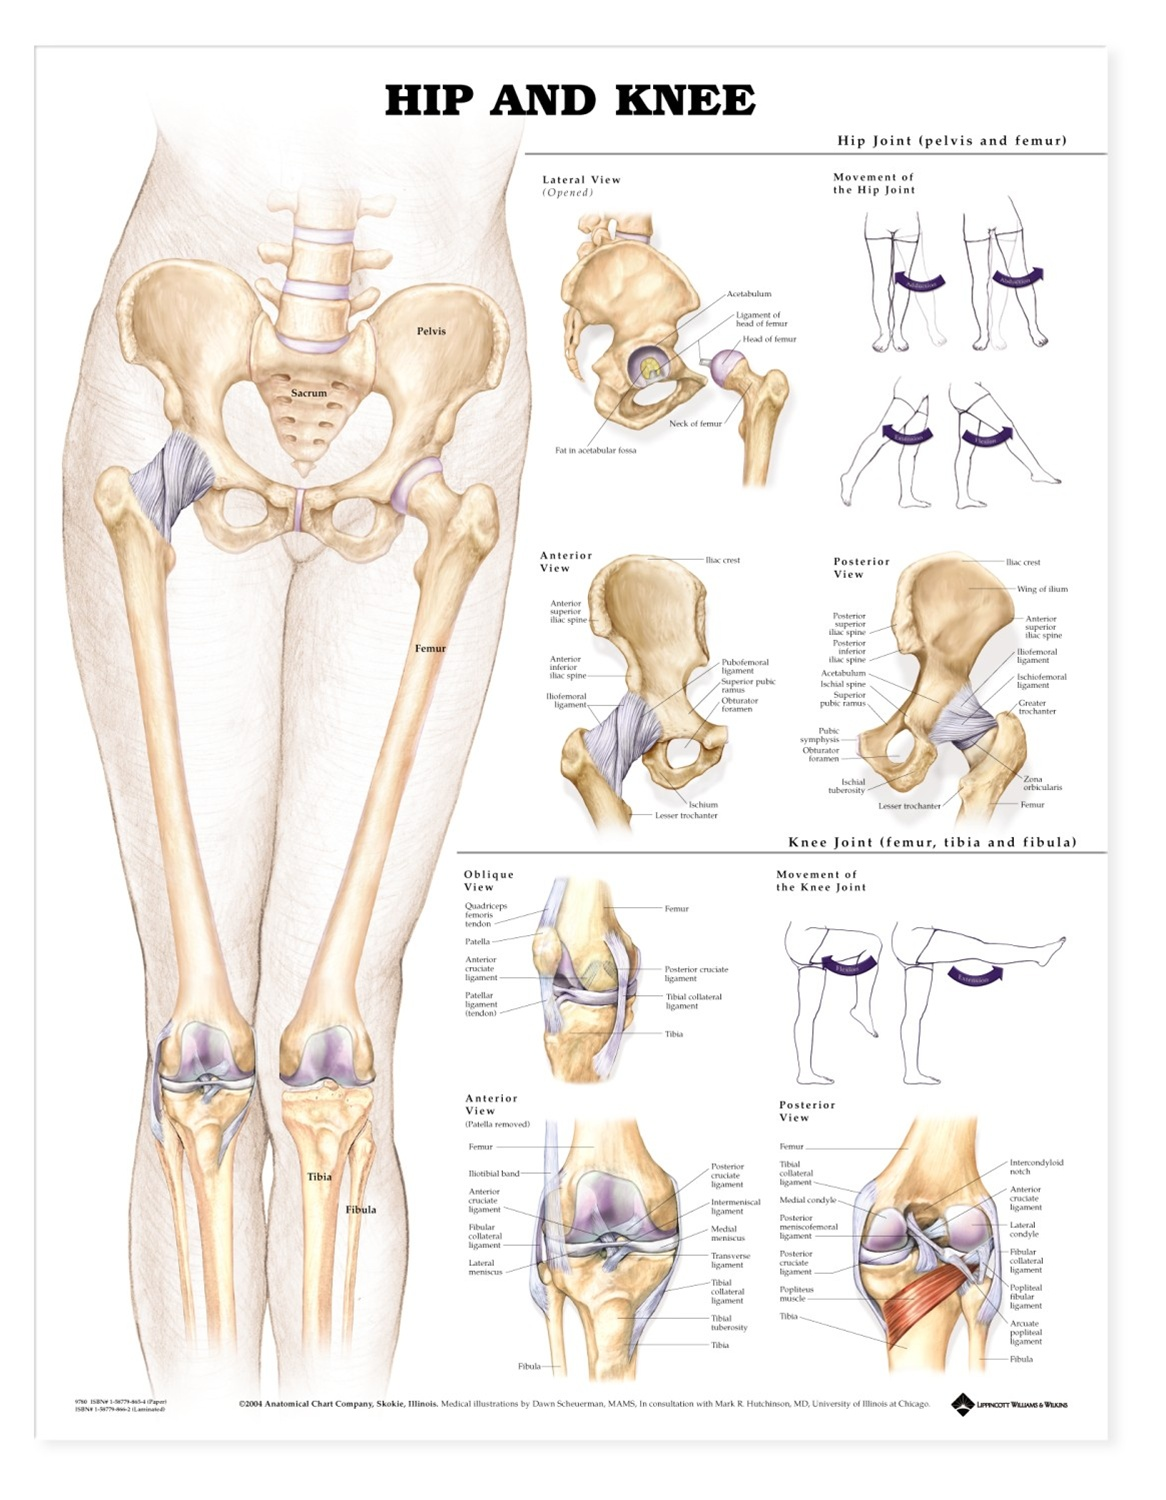 Hip and Knee Anatomical Chart - Anatomy Models and Anatomical Charts